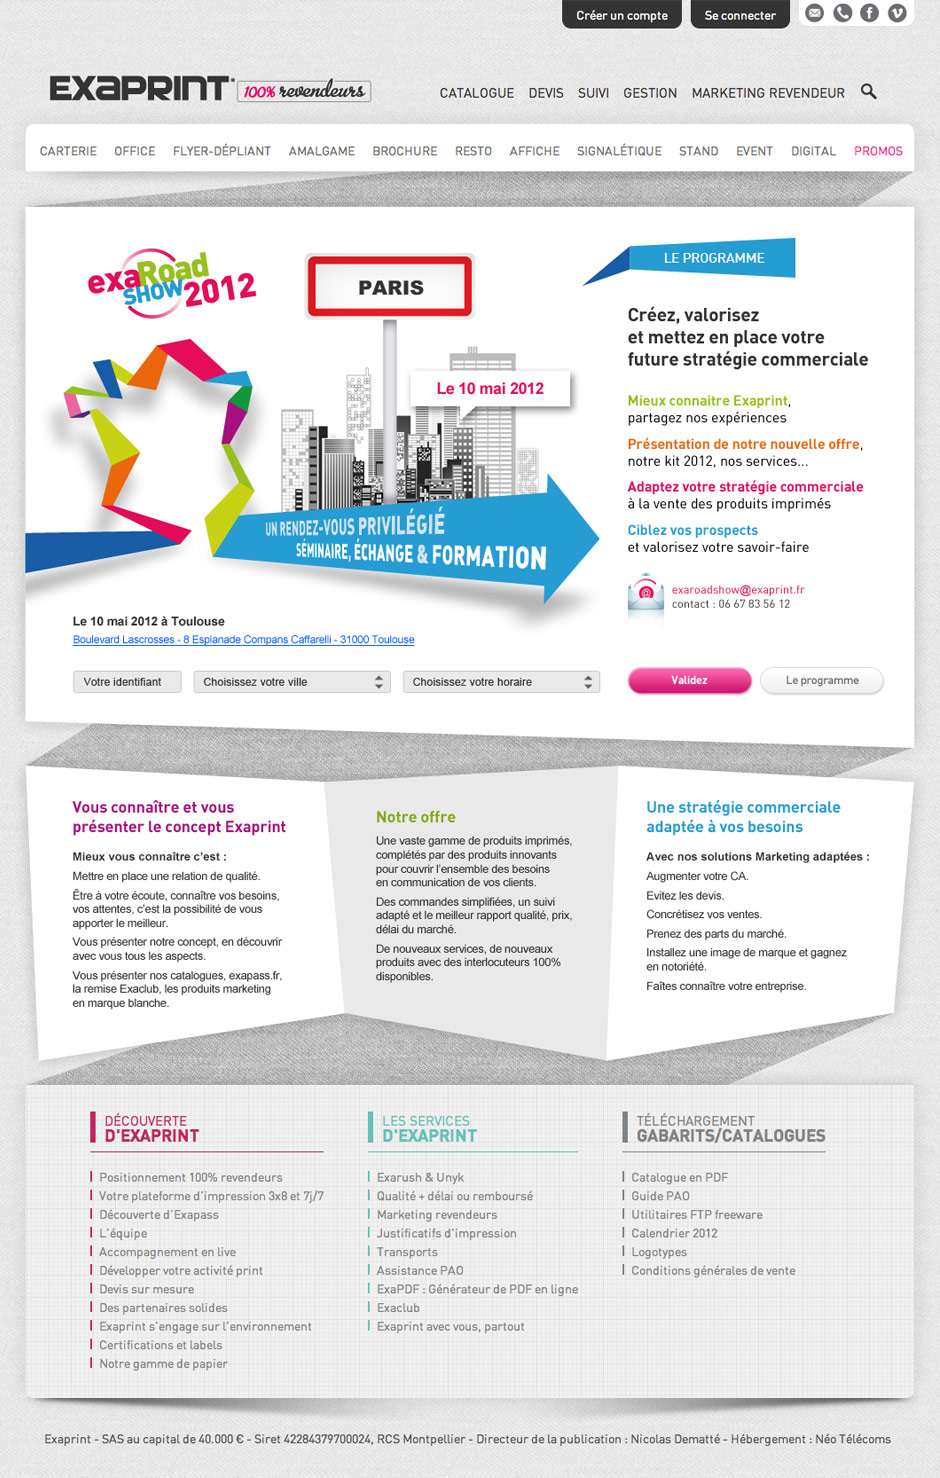 graphiste-montpellier-creation-exaprint-exaroadshow-agence-communication-montpellier-caconcept-alexis-cretin-4